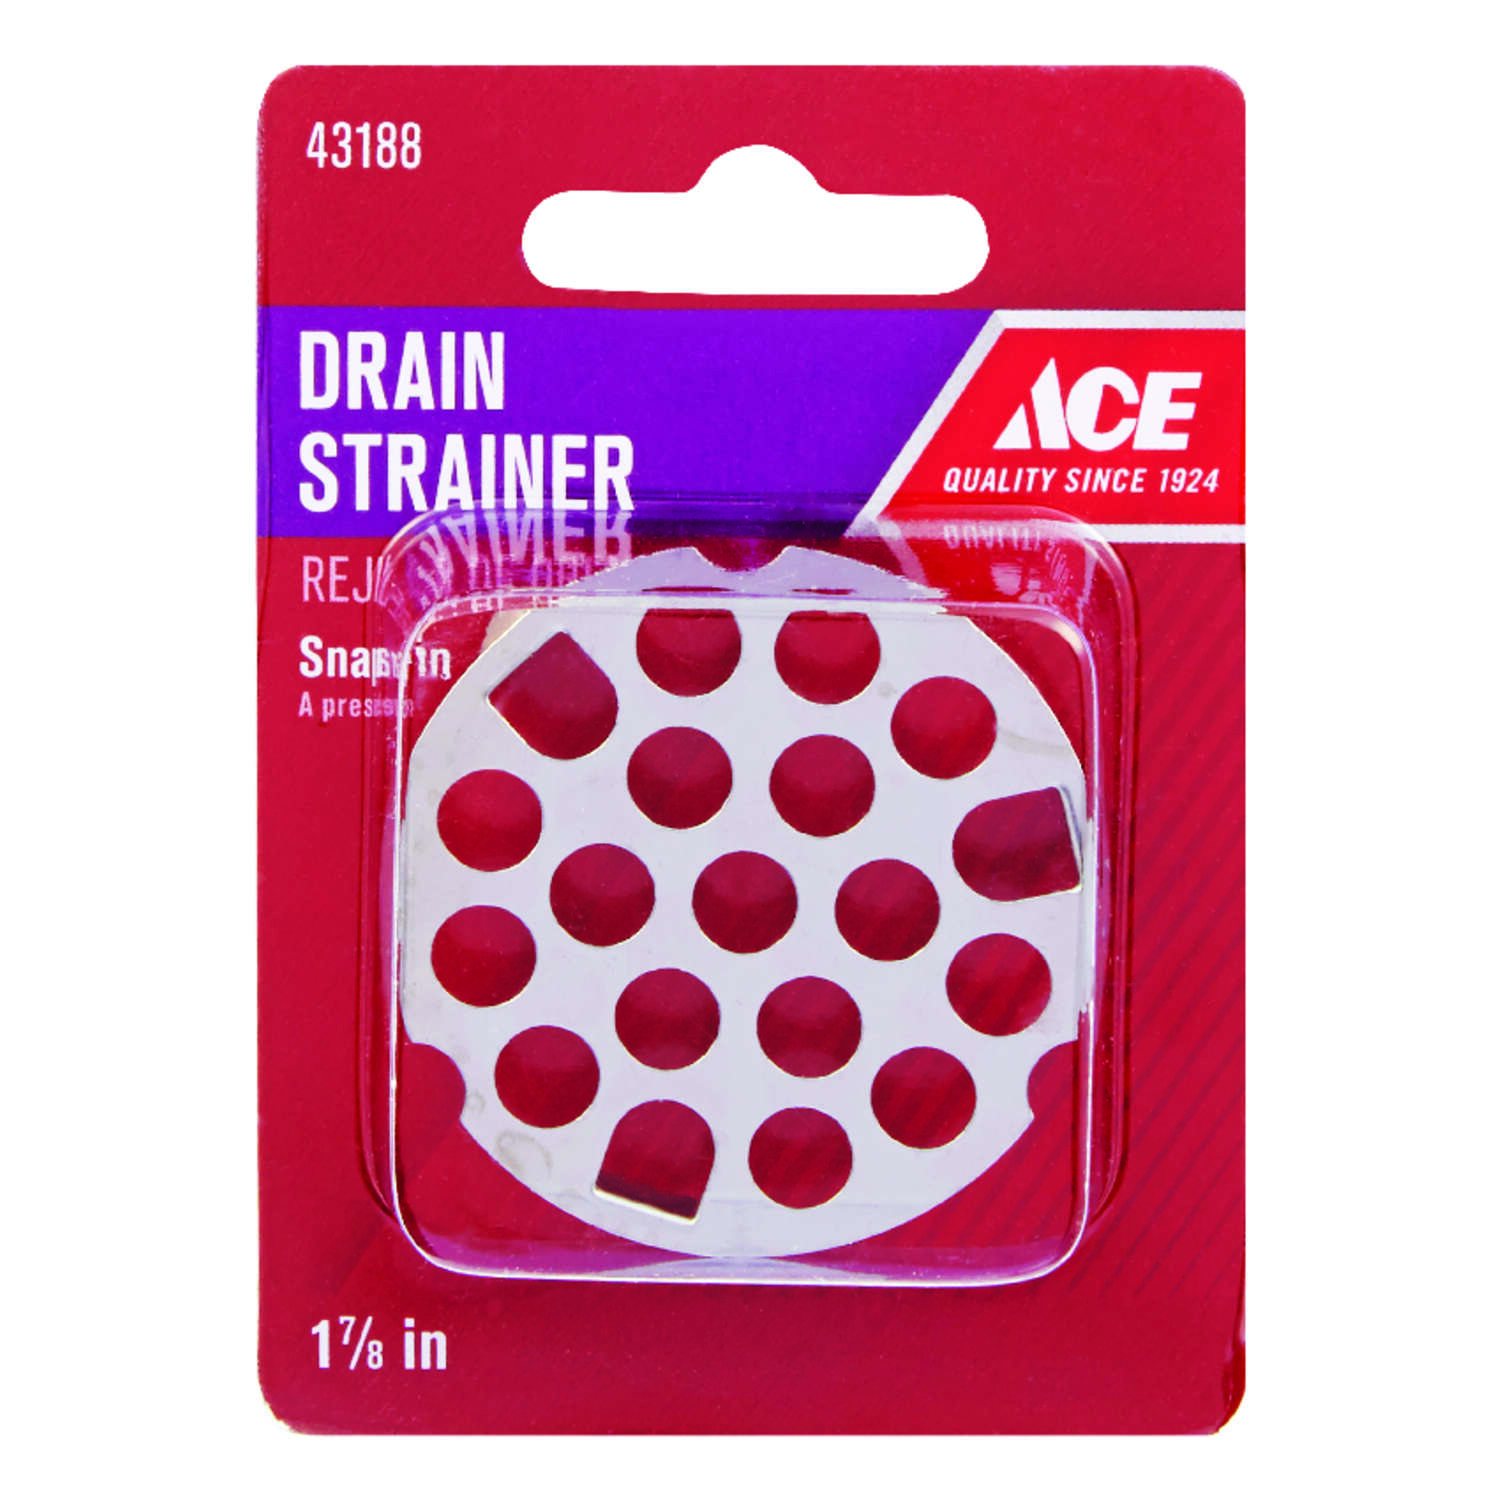 Ace  1-7/8 in. Dia. Stainless Steel  Sink Strainer